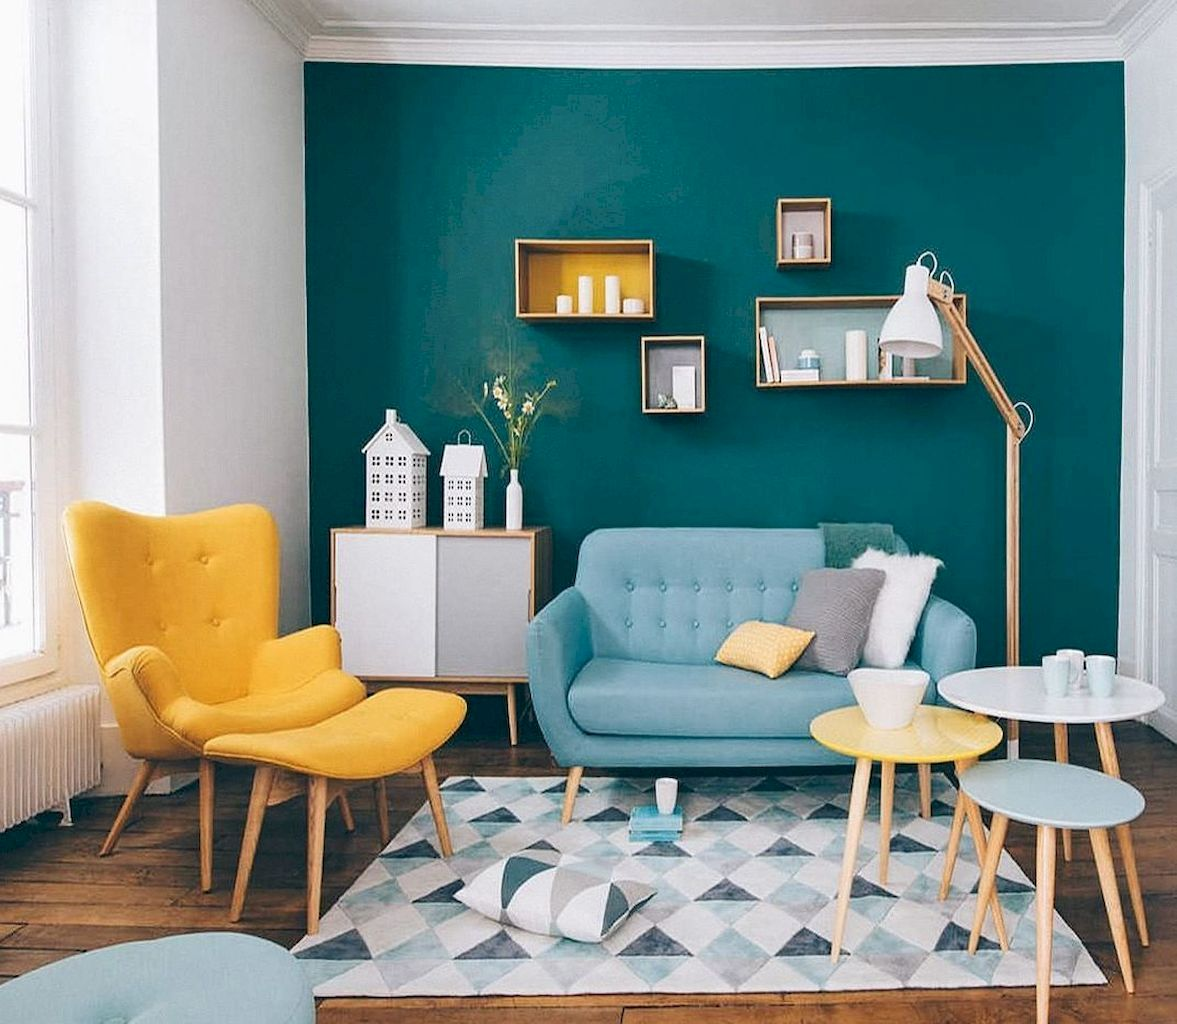 Amazing Interior Ideas in Blue and Yellow Decorations Part 32